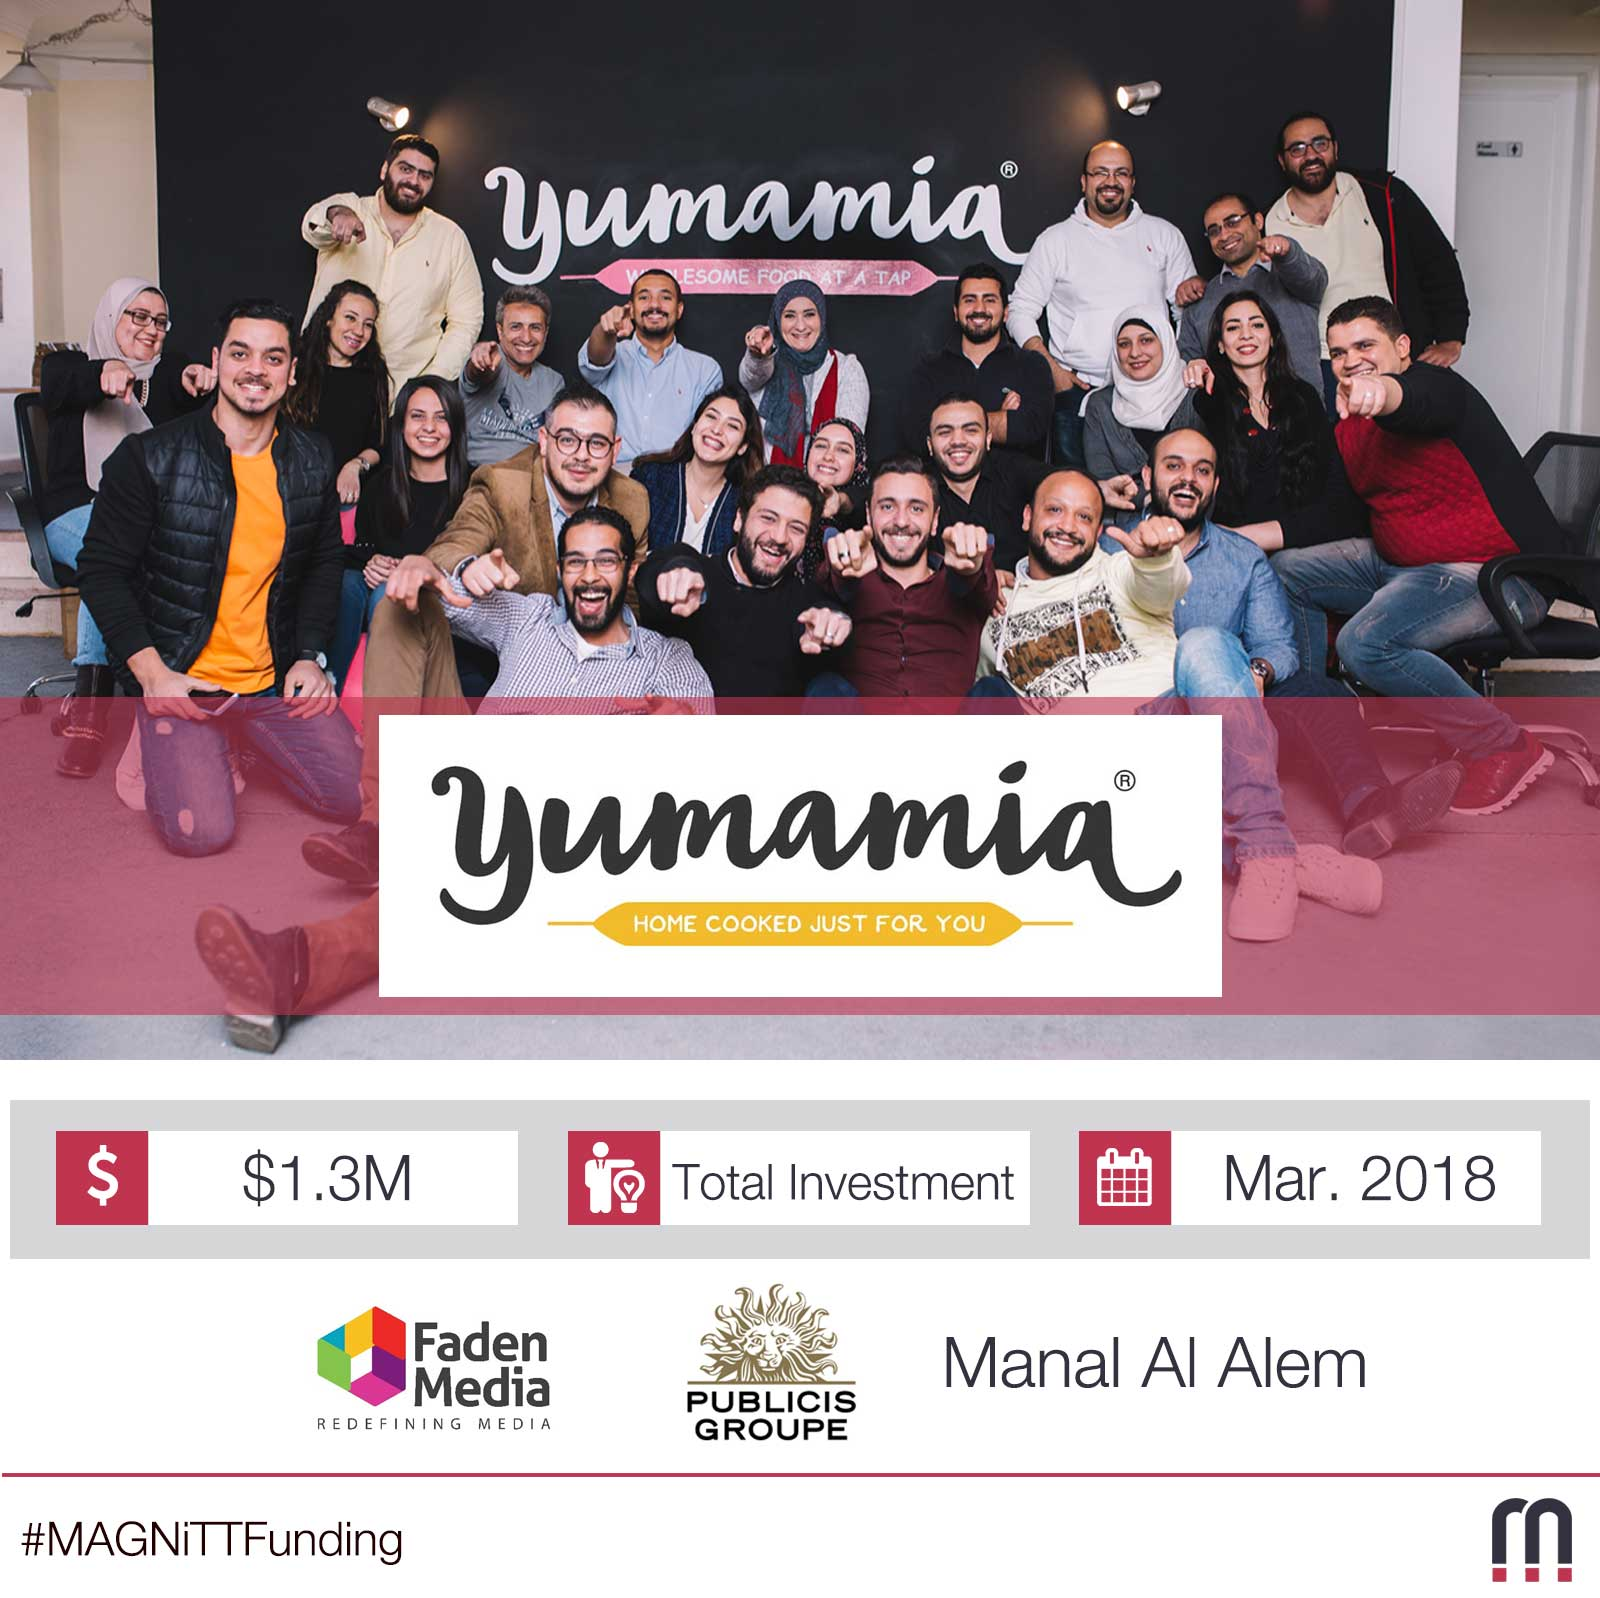 Egypt-based startup Yumamia receives follow on investment to raise $1.3m Series A